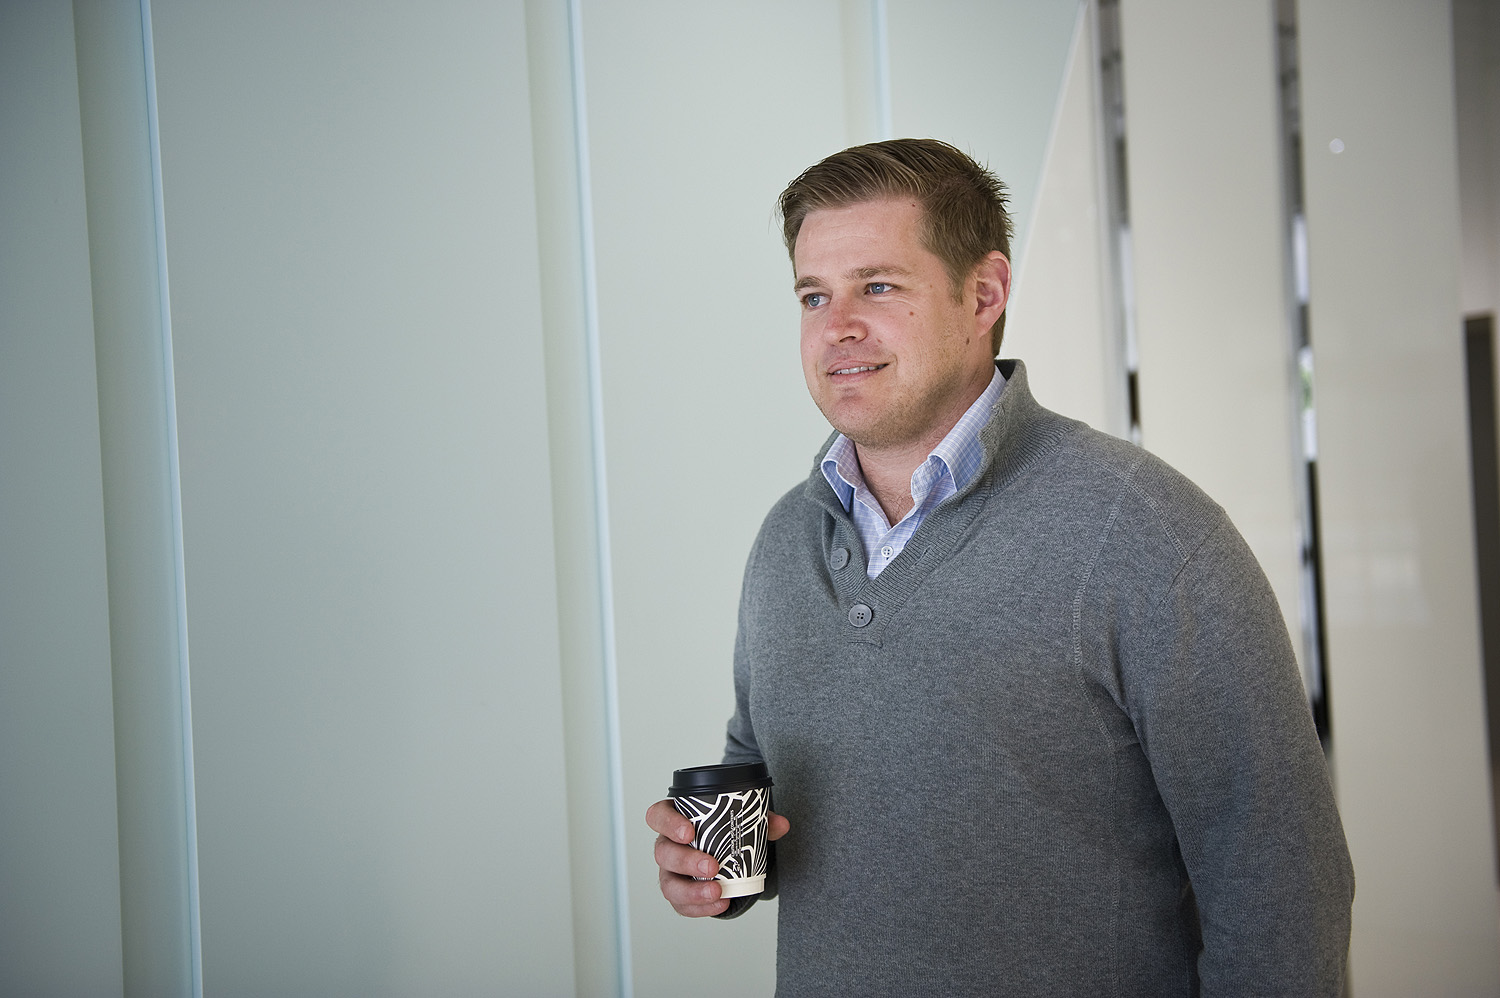 Scott Lambert Owner's Corporations Manager with his morning coffee